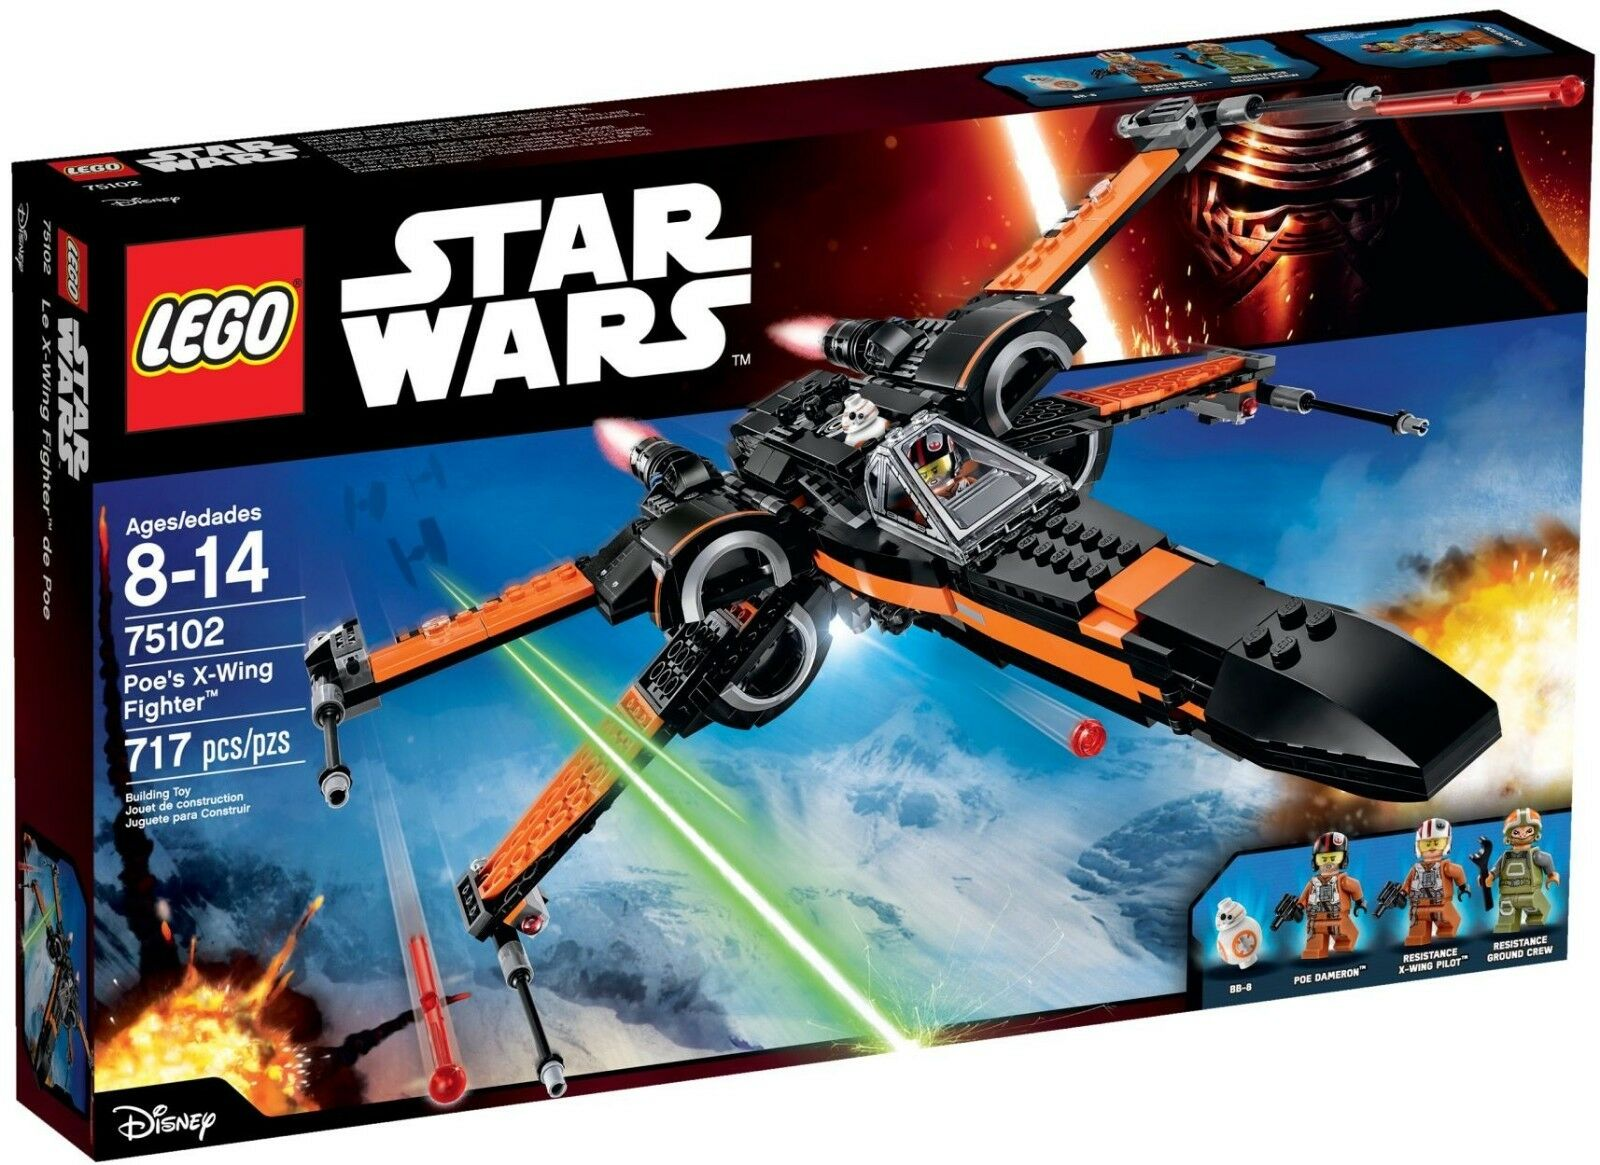 LEGO 75102 - Star Wars - Poe's X-Wing Starfighter - New - Perfect Box - Retired